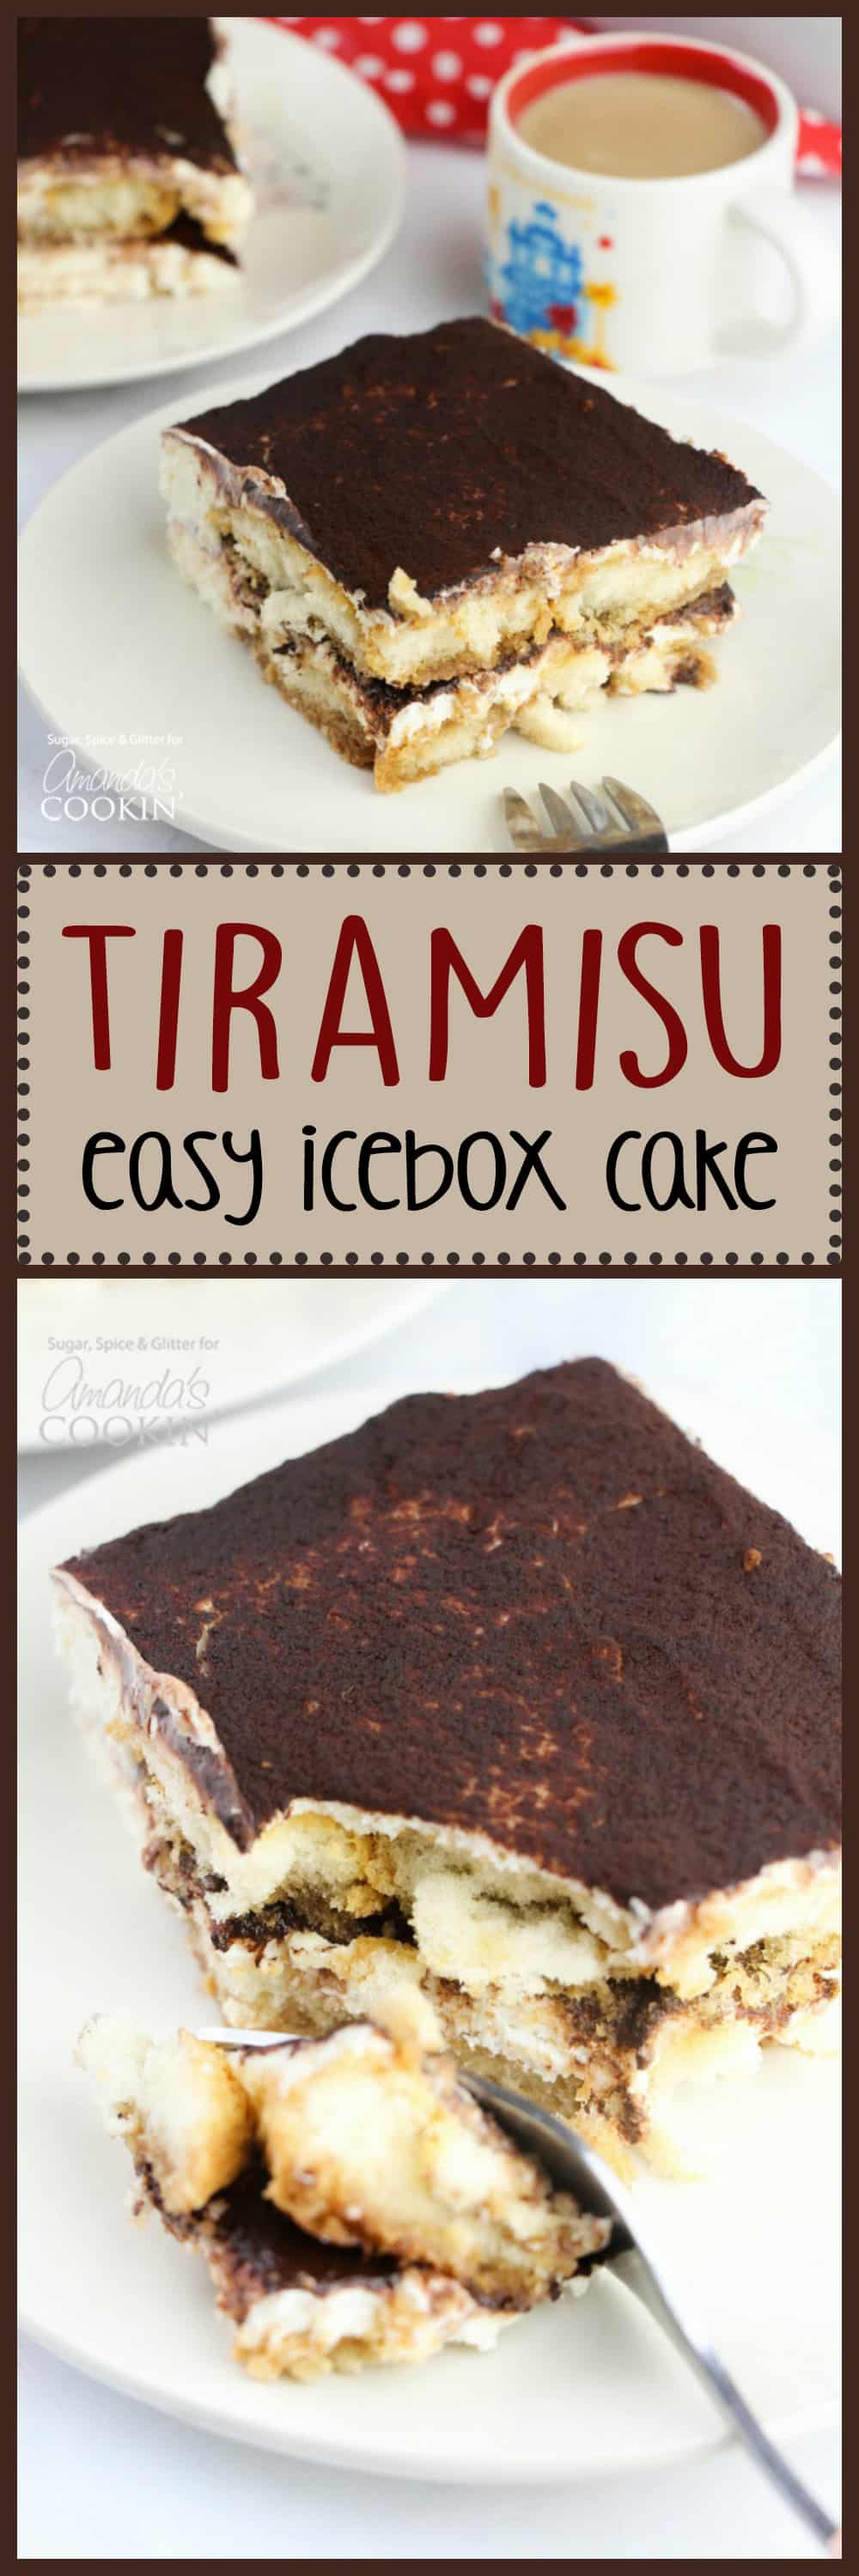 This no-bake Tiramisu Icebox Cake comes together in minutes and is the perfect dessert with a cup of coffee or after a traditional Italian meal. #tiramisu #iceboxcake #refrigeratorcake #tiramisudessert #dessertrecipes #dessert #coffee #espresso #cocoa #italiandessert